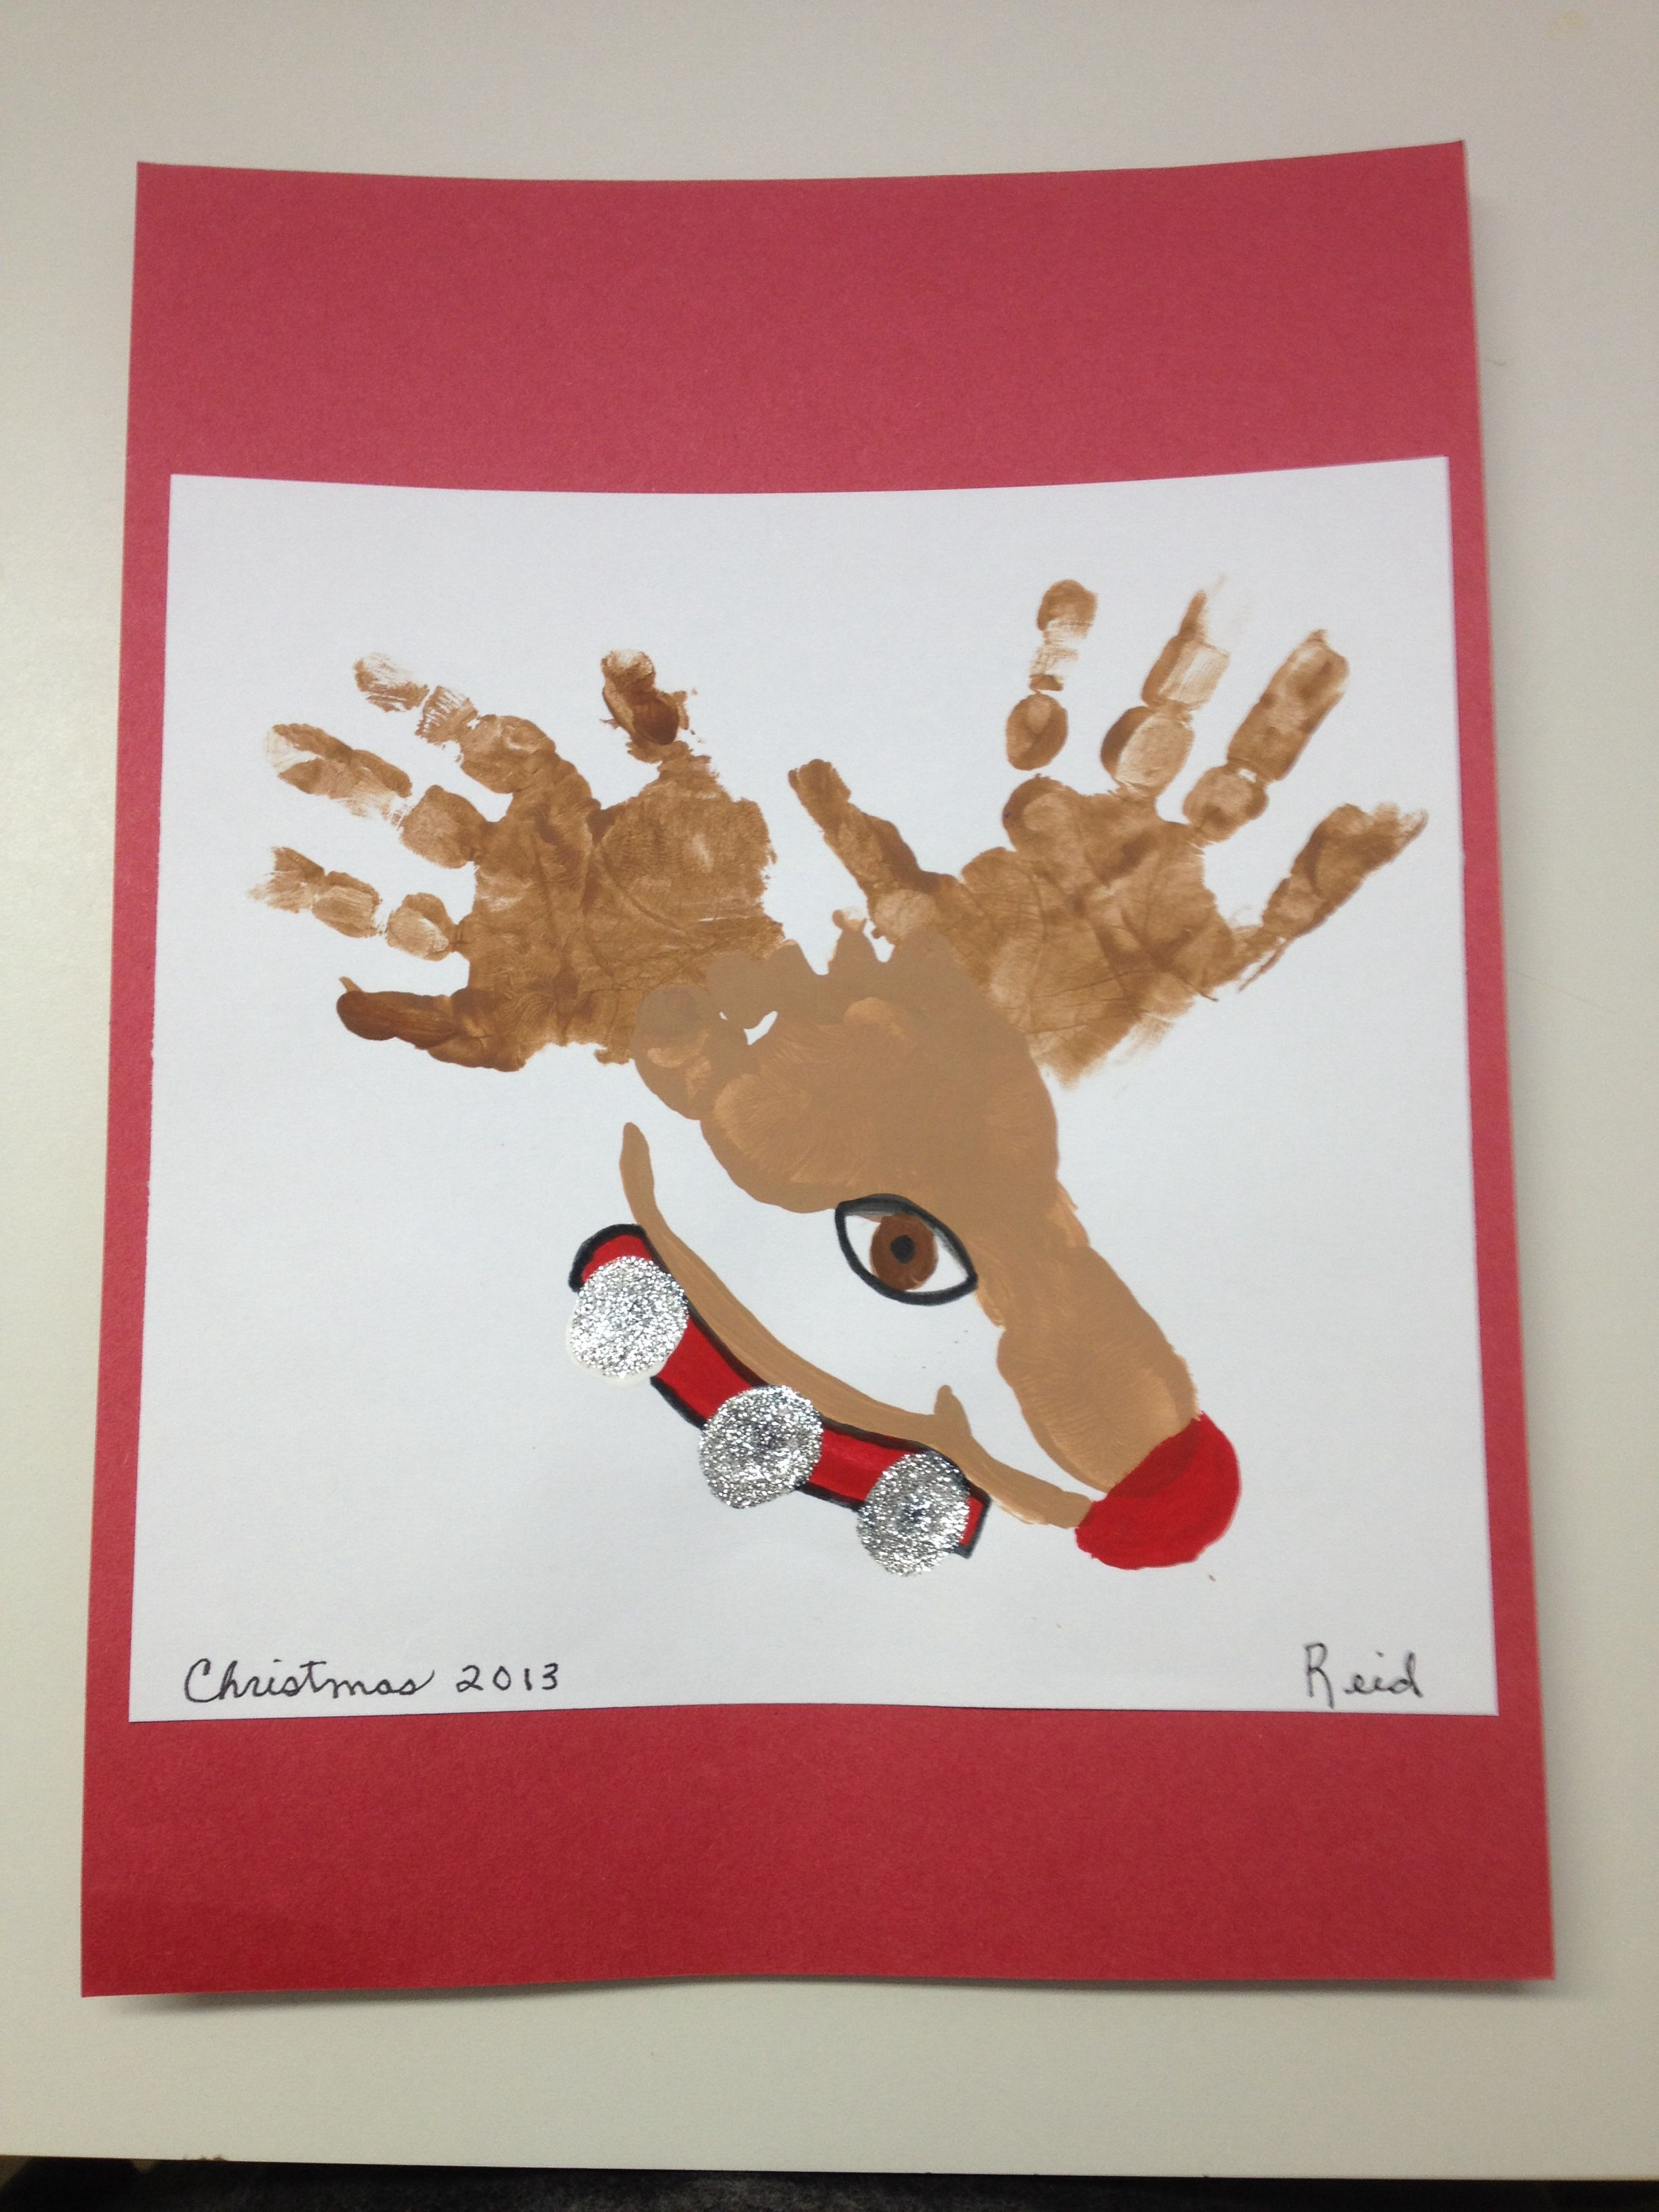 Arts and crafts prints - Christmas Crafts